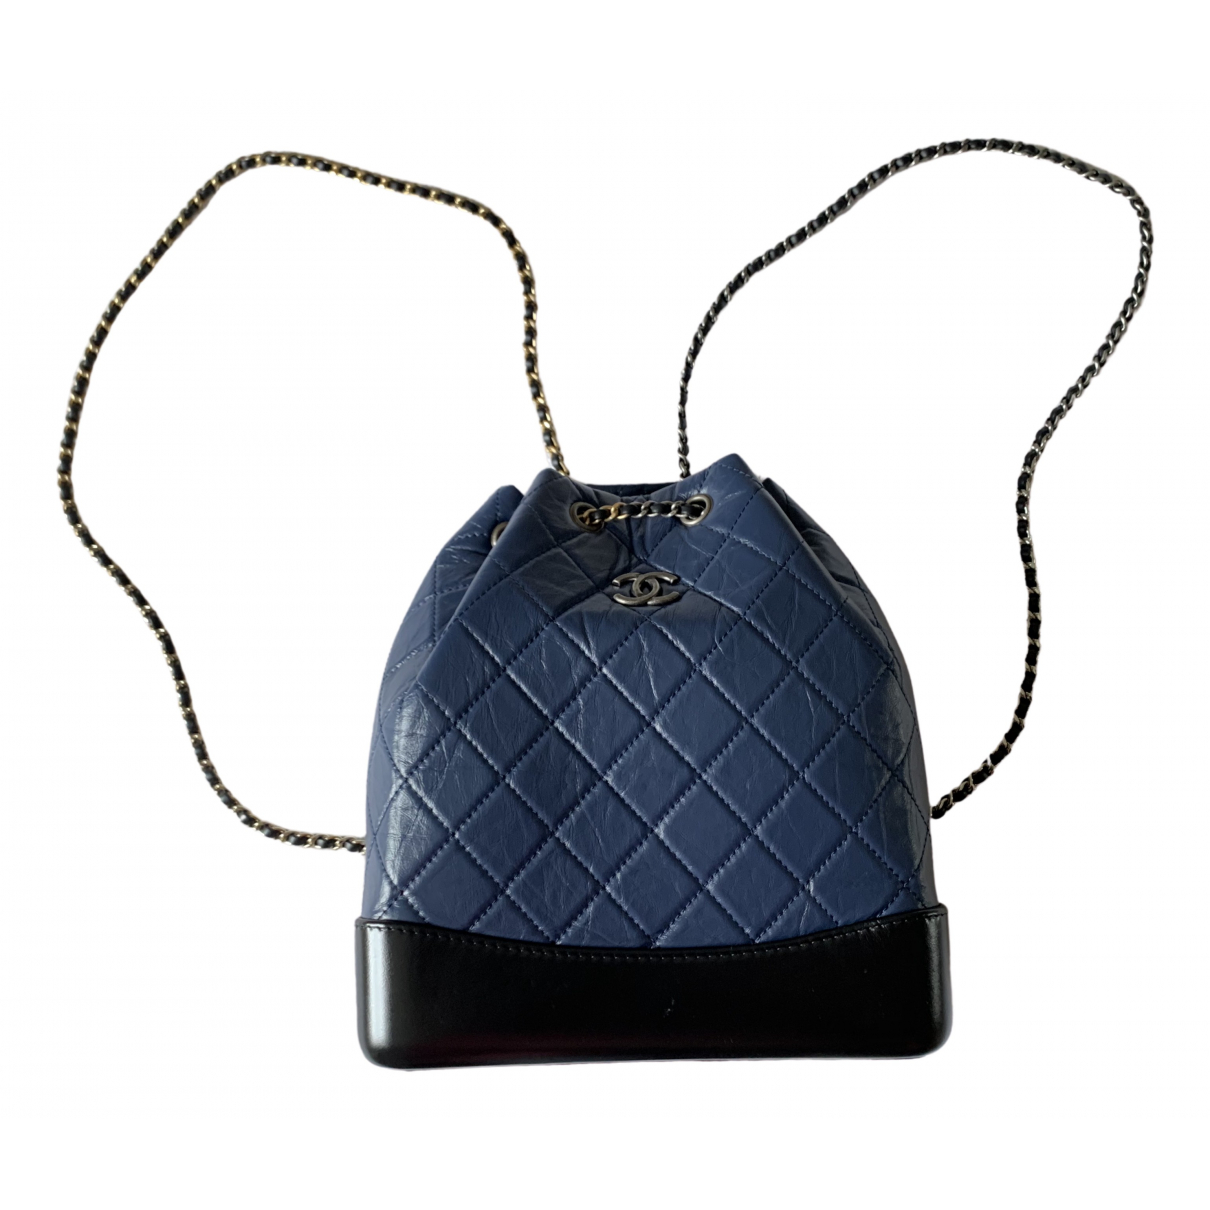 Chanel Gabrielle Navy Leather backpack for Women \N